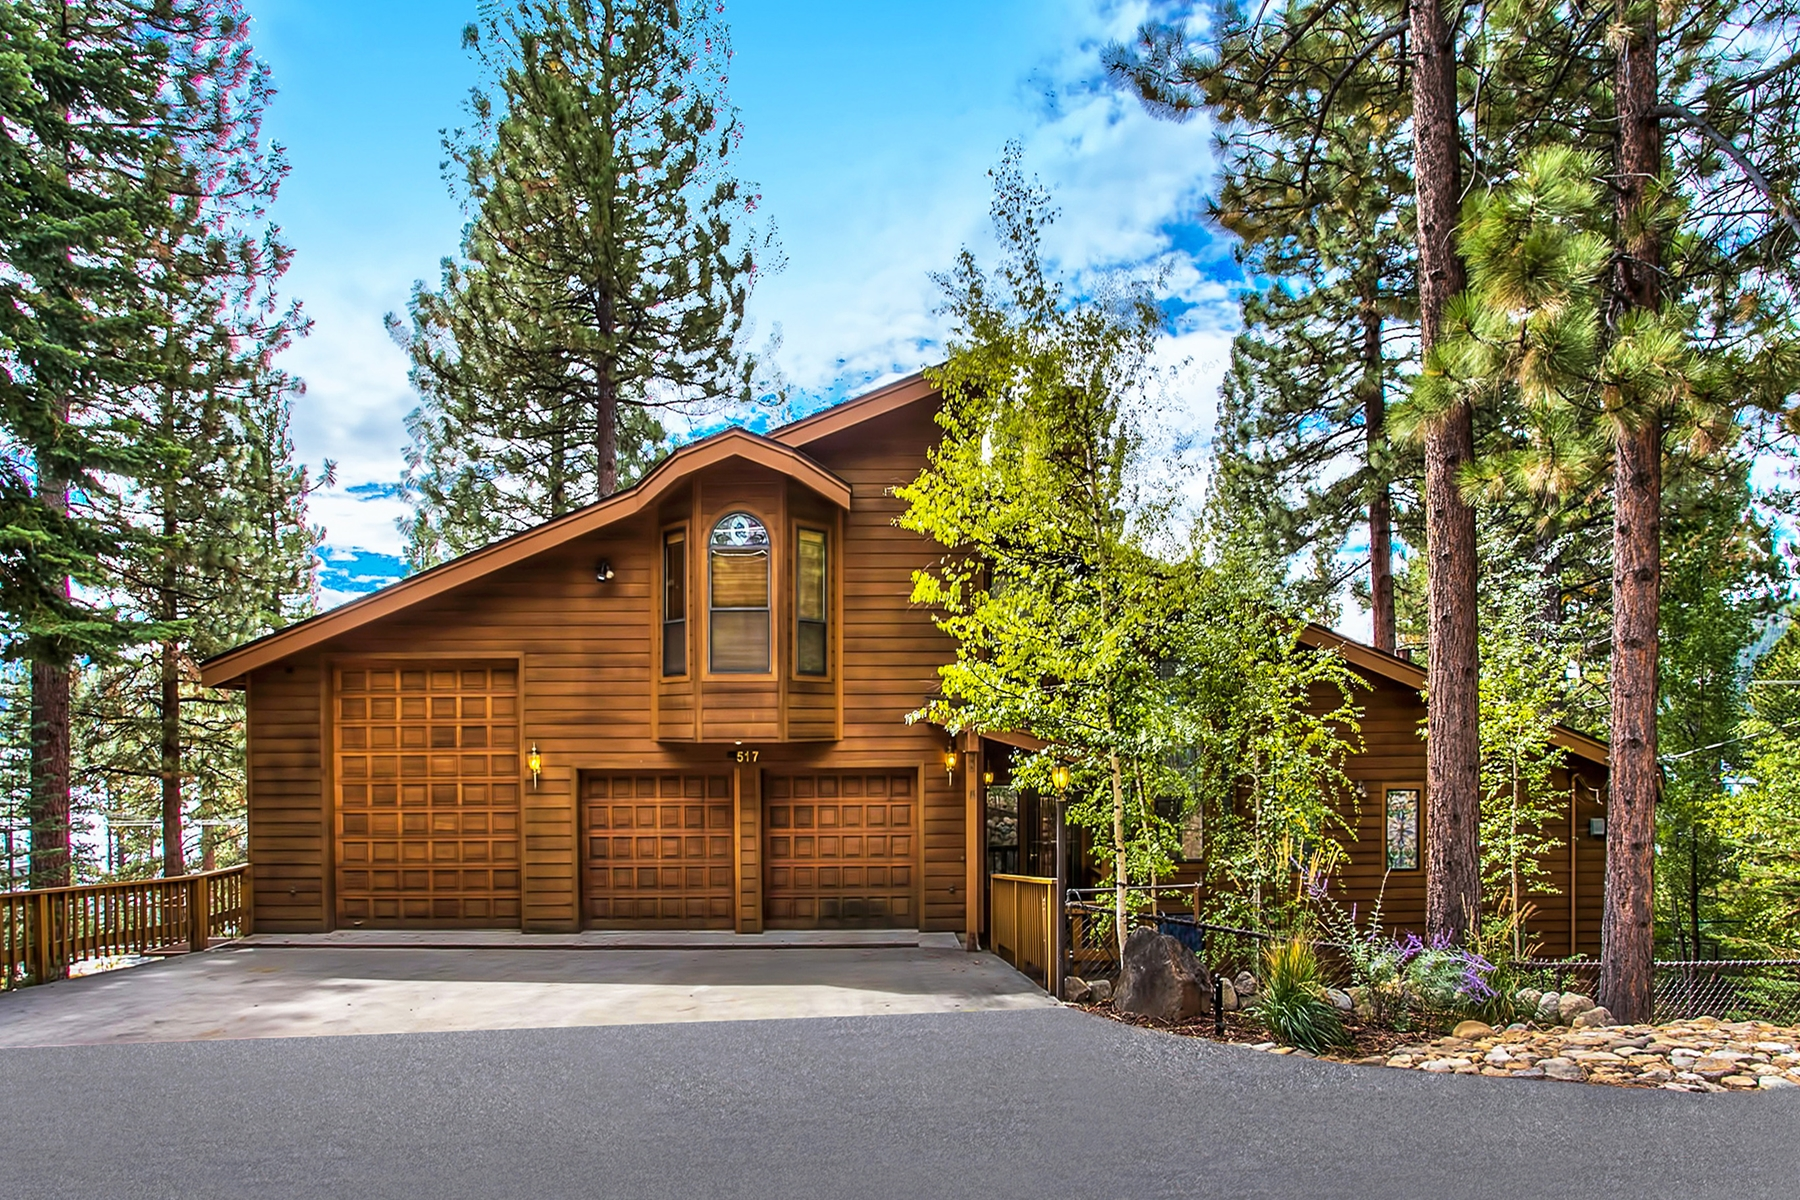 Additional photo for property listing at 517 Lodgepole Drive  Incline Village, Nevada 89451 Estados Unidos